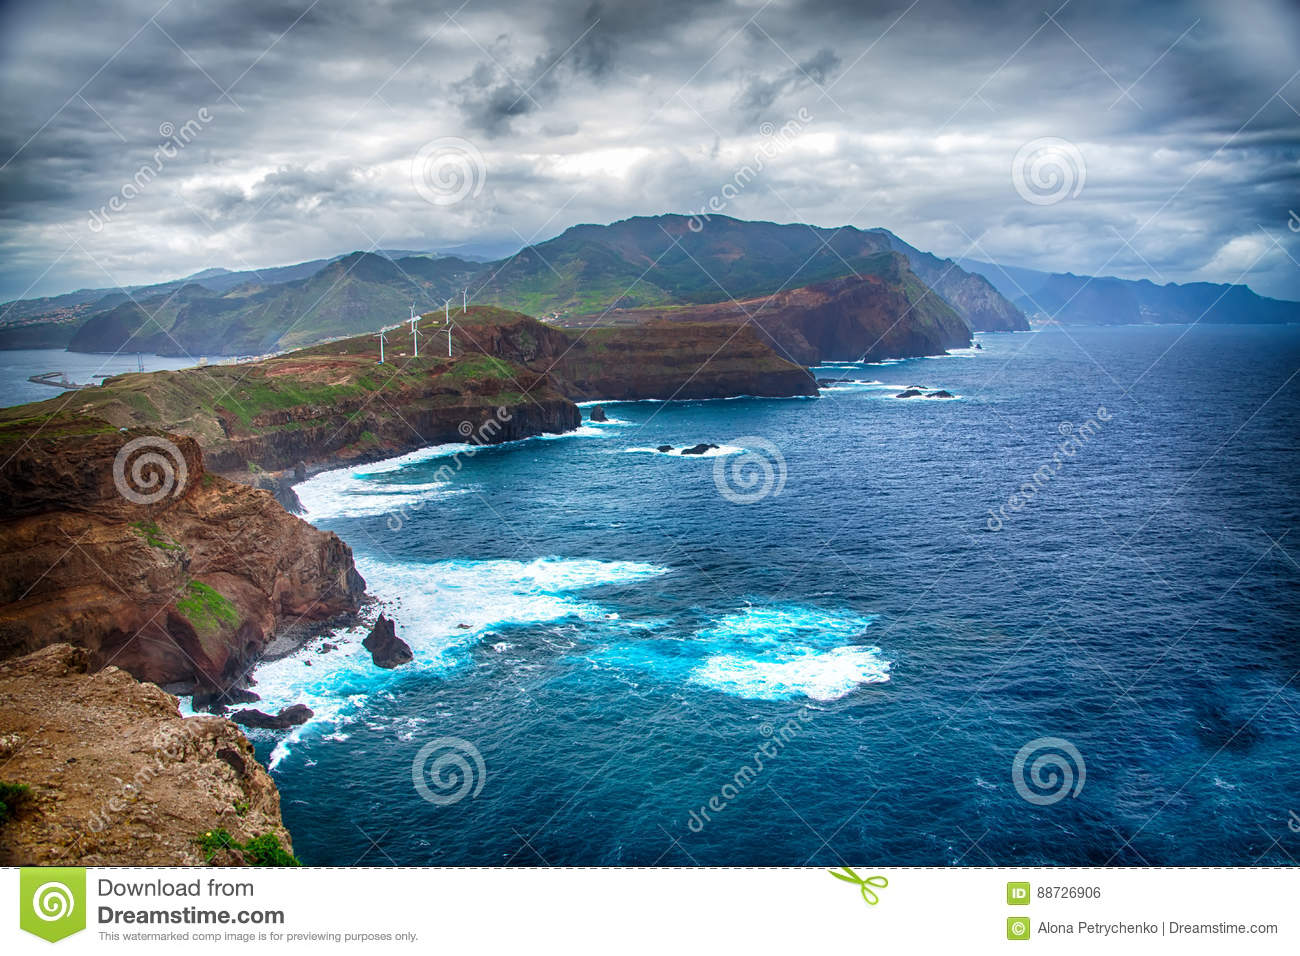 Blue ocean, mountains, rocks, windmills and cloudy sky